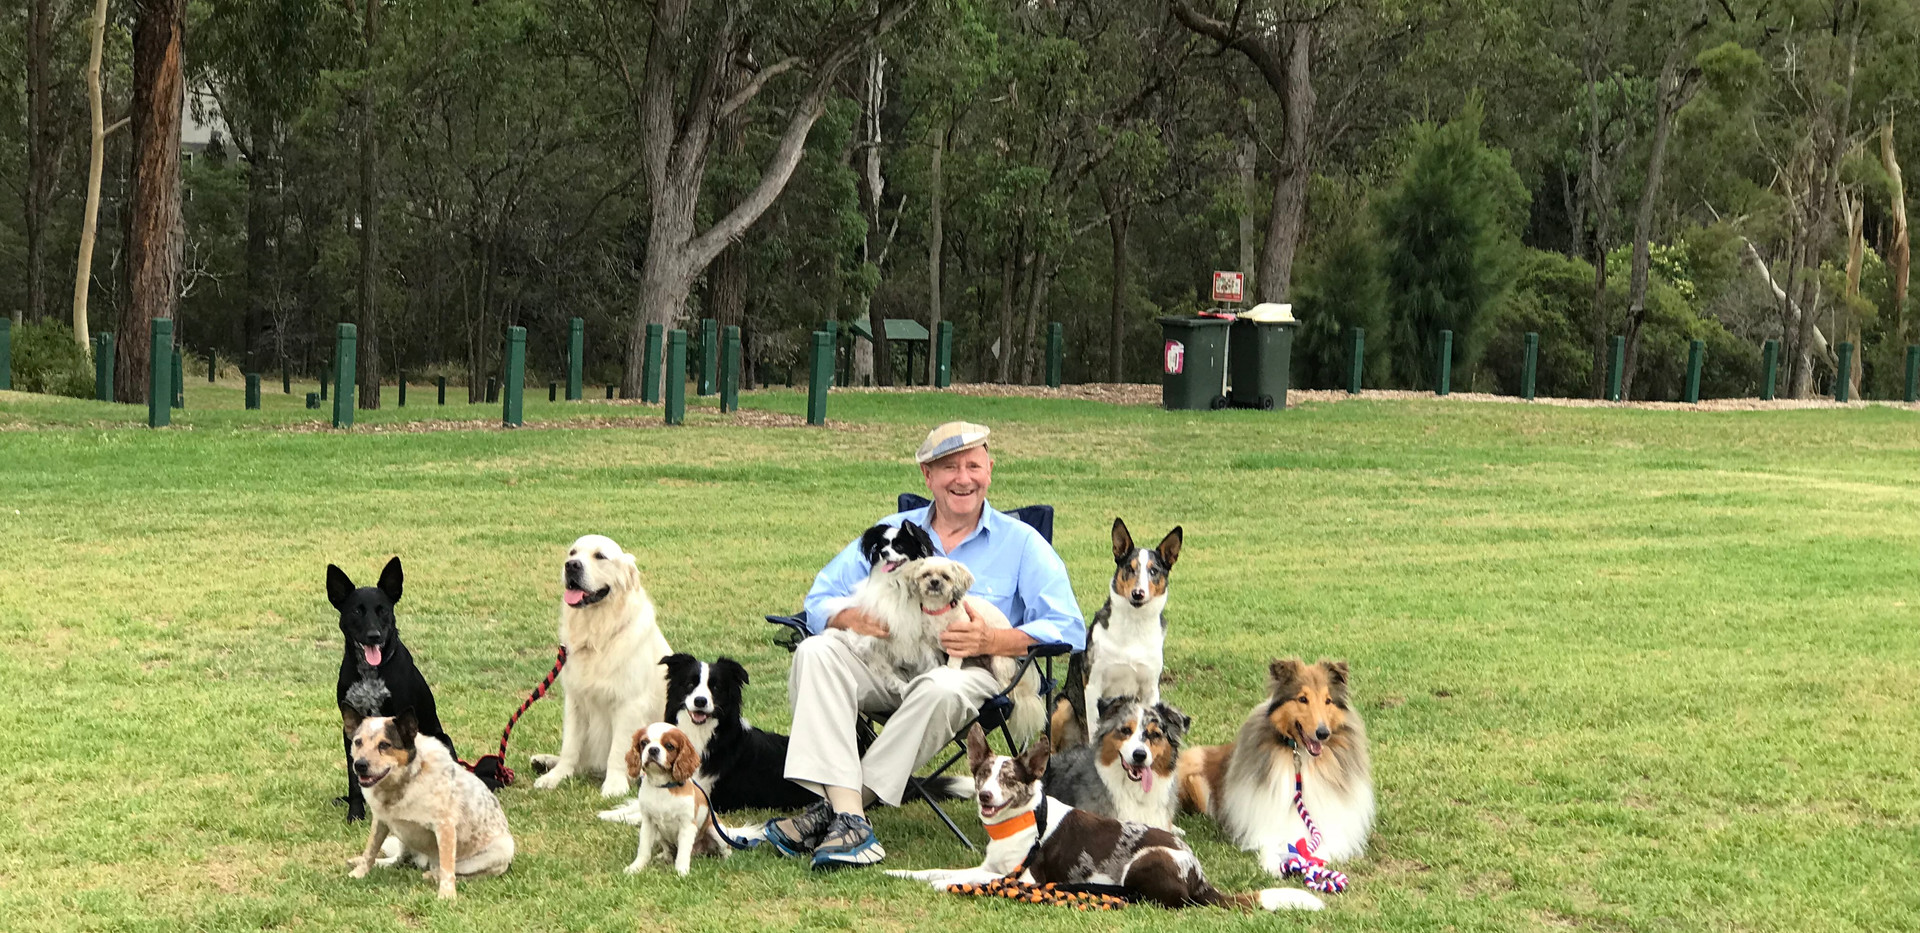 Dr Harry and his doggy crew!